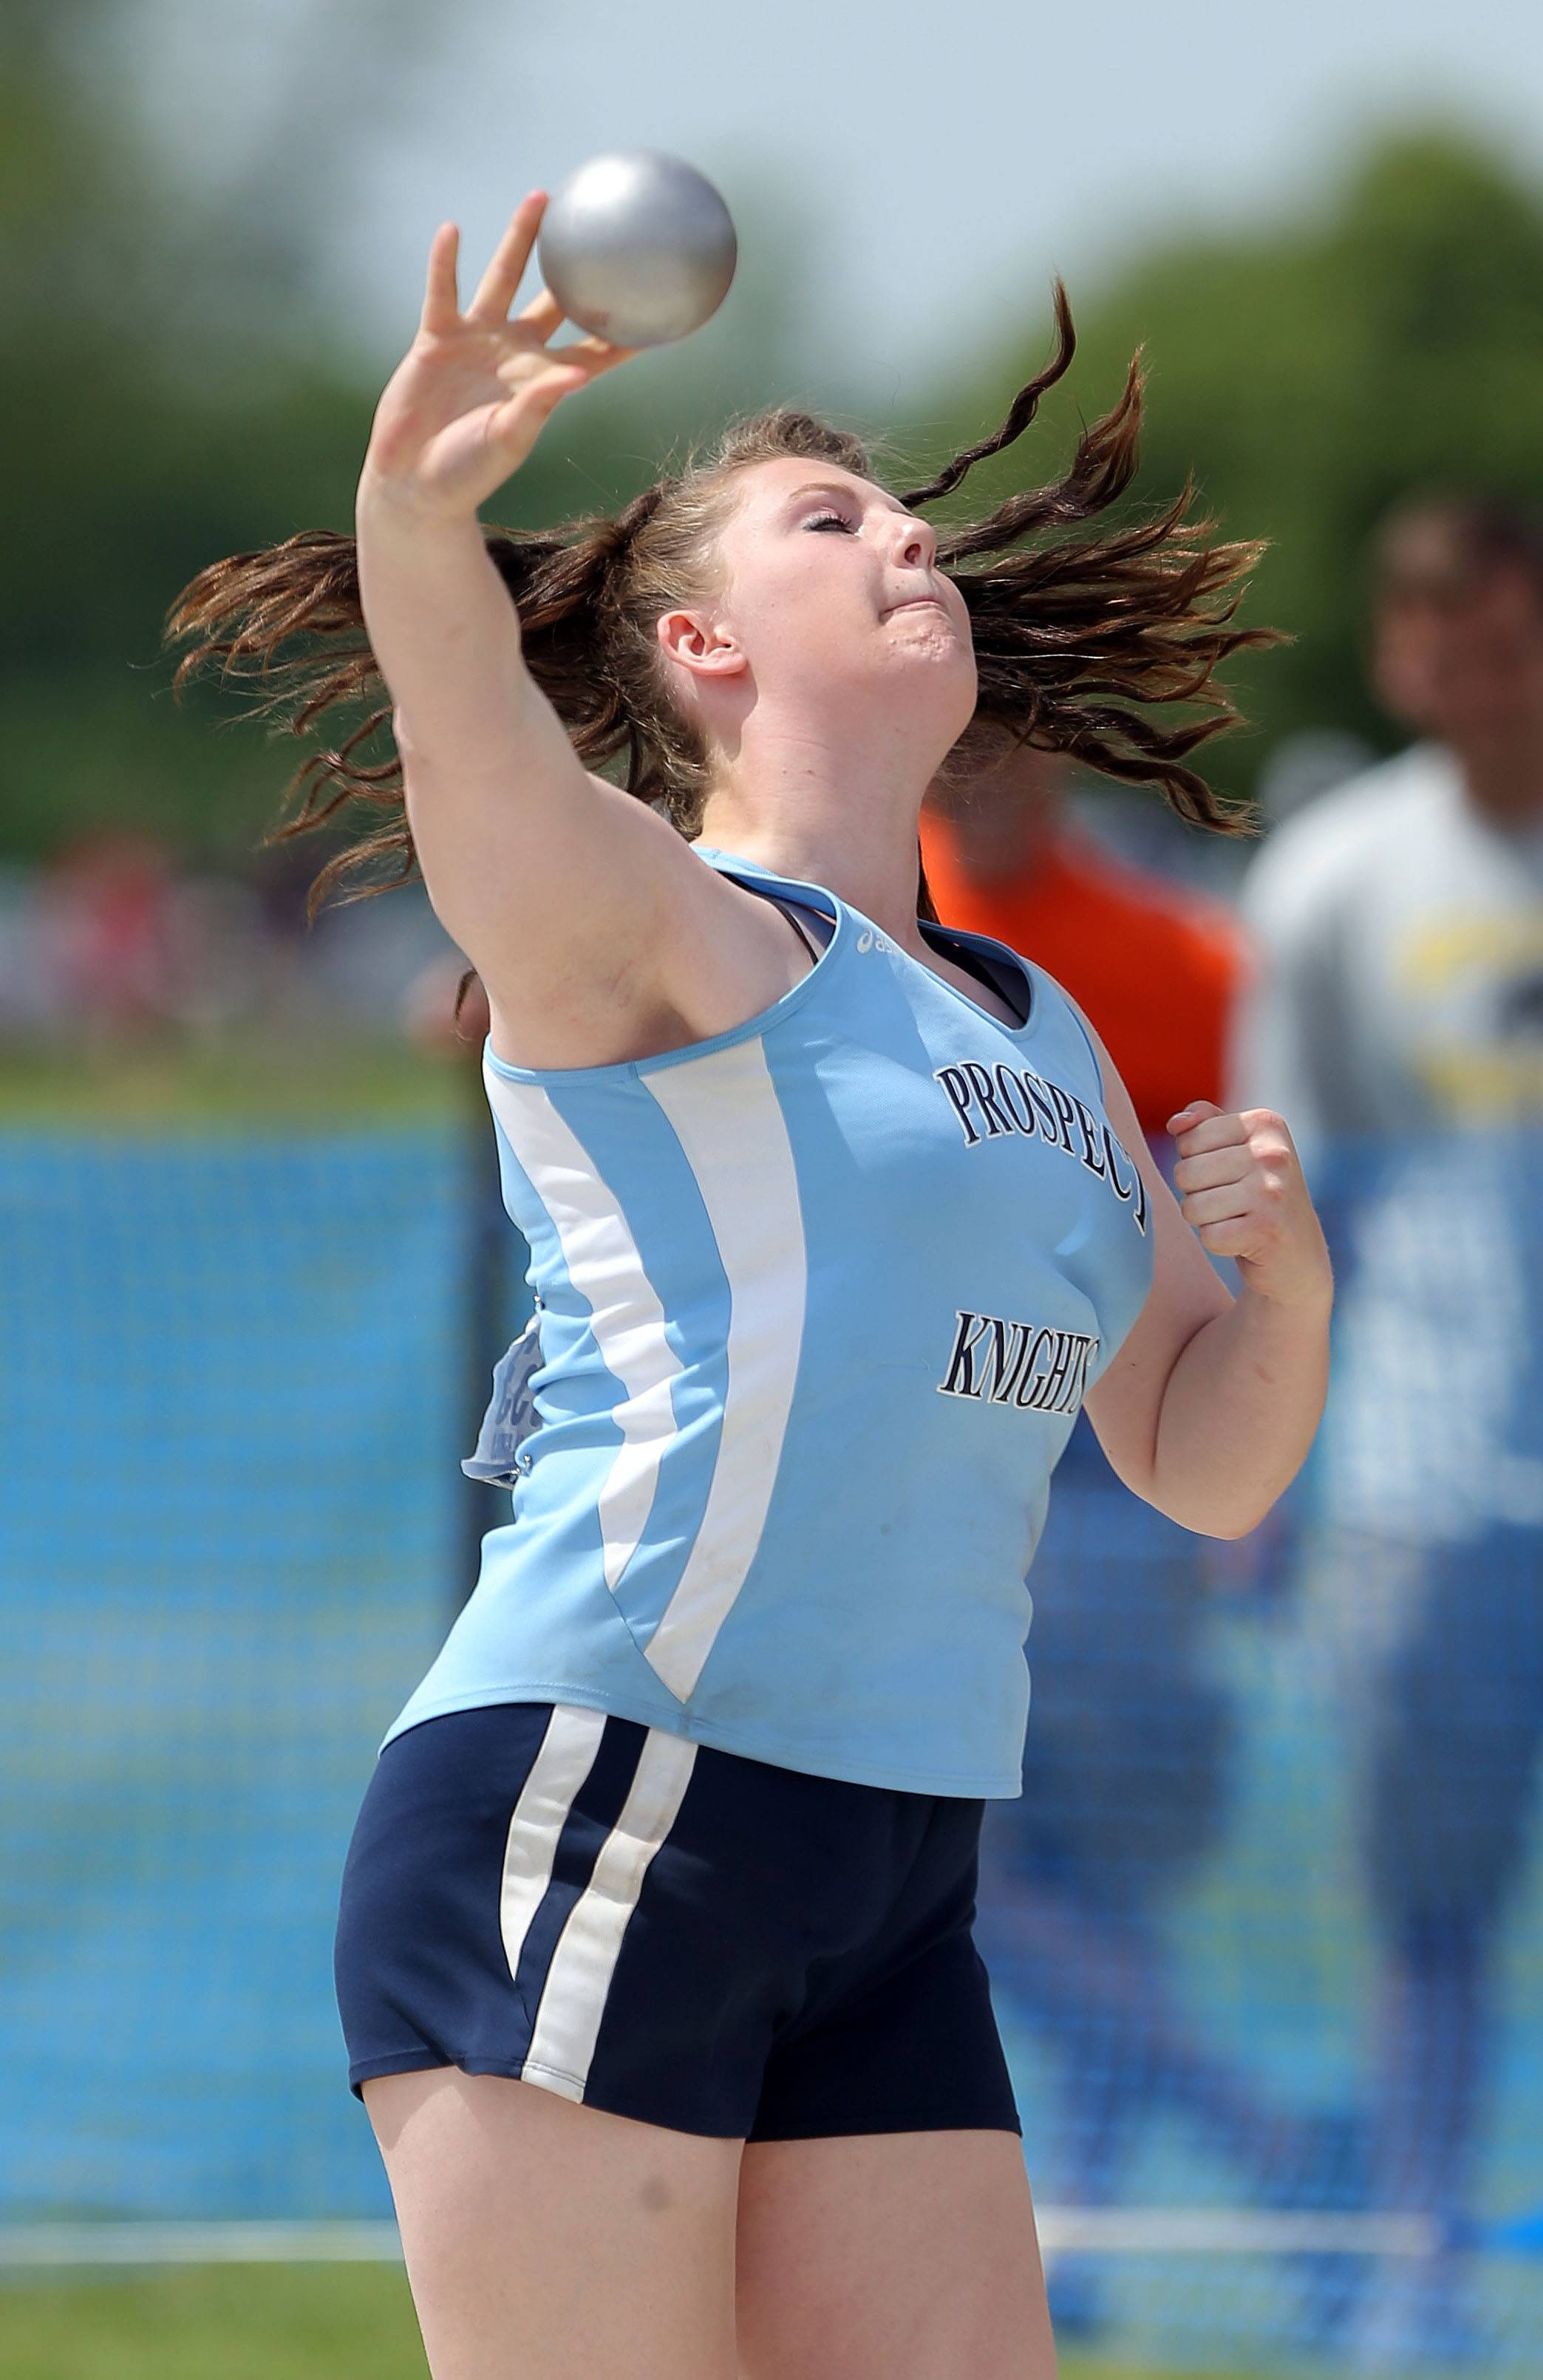 Prospect's Erin Reese competes in the Class 3A shot put during the girls track and field state finals at Eastern Illinois University in Charleston on Saturday.